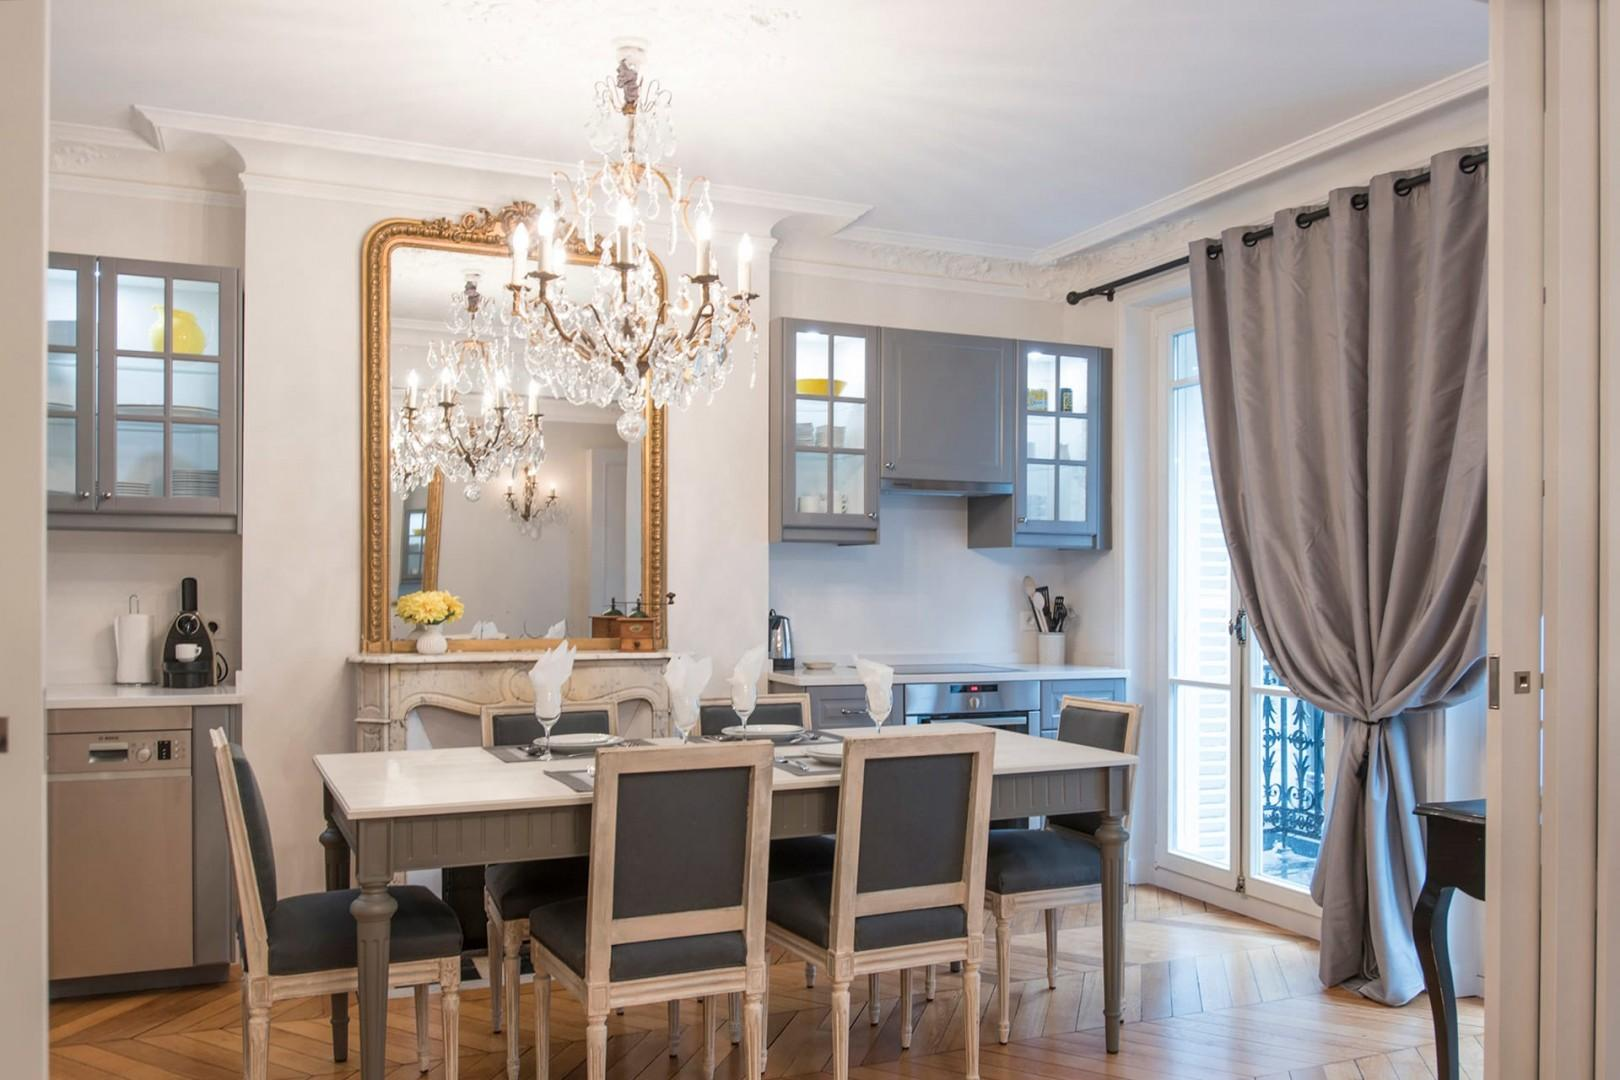 Dine with friends and family underneath a lovely chandelier.